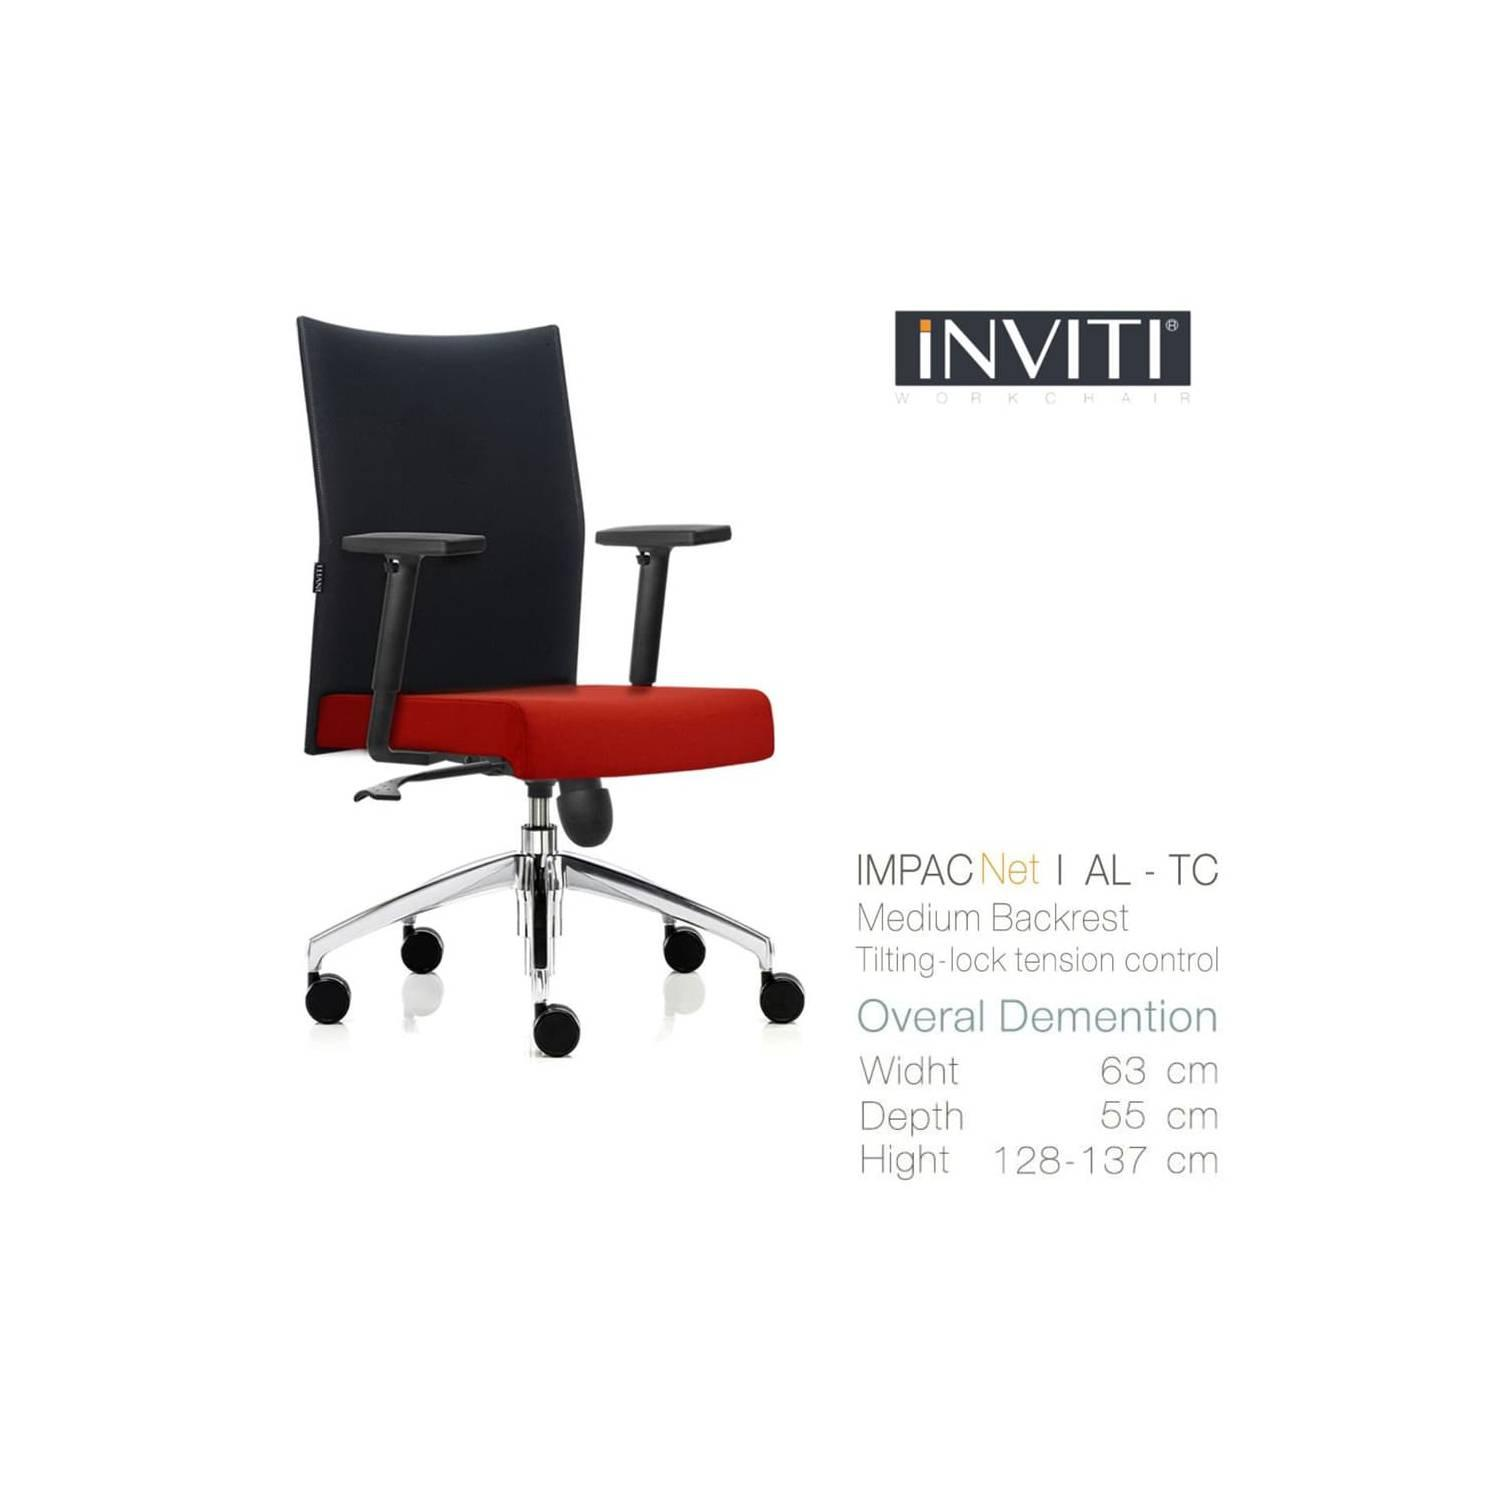 IMPAC NET I AL-AT Kursi Kantor (Office Chair) INVITI